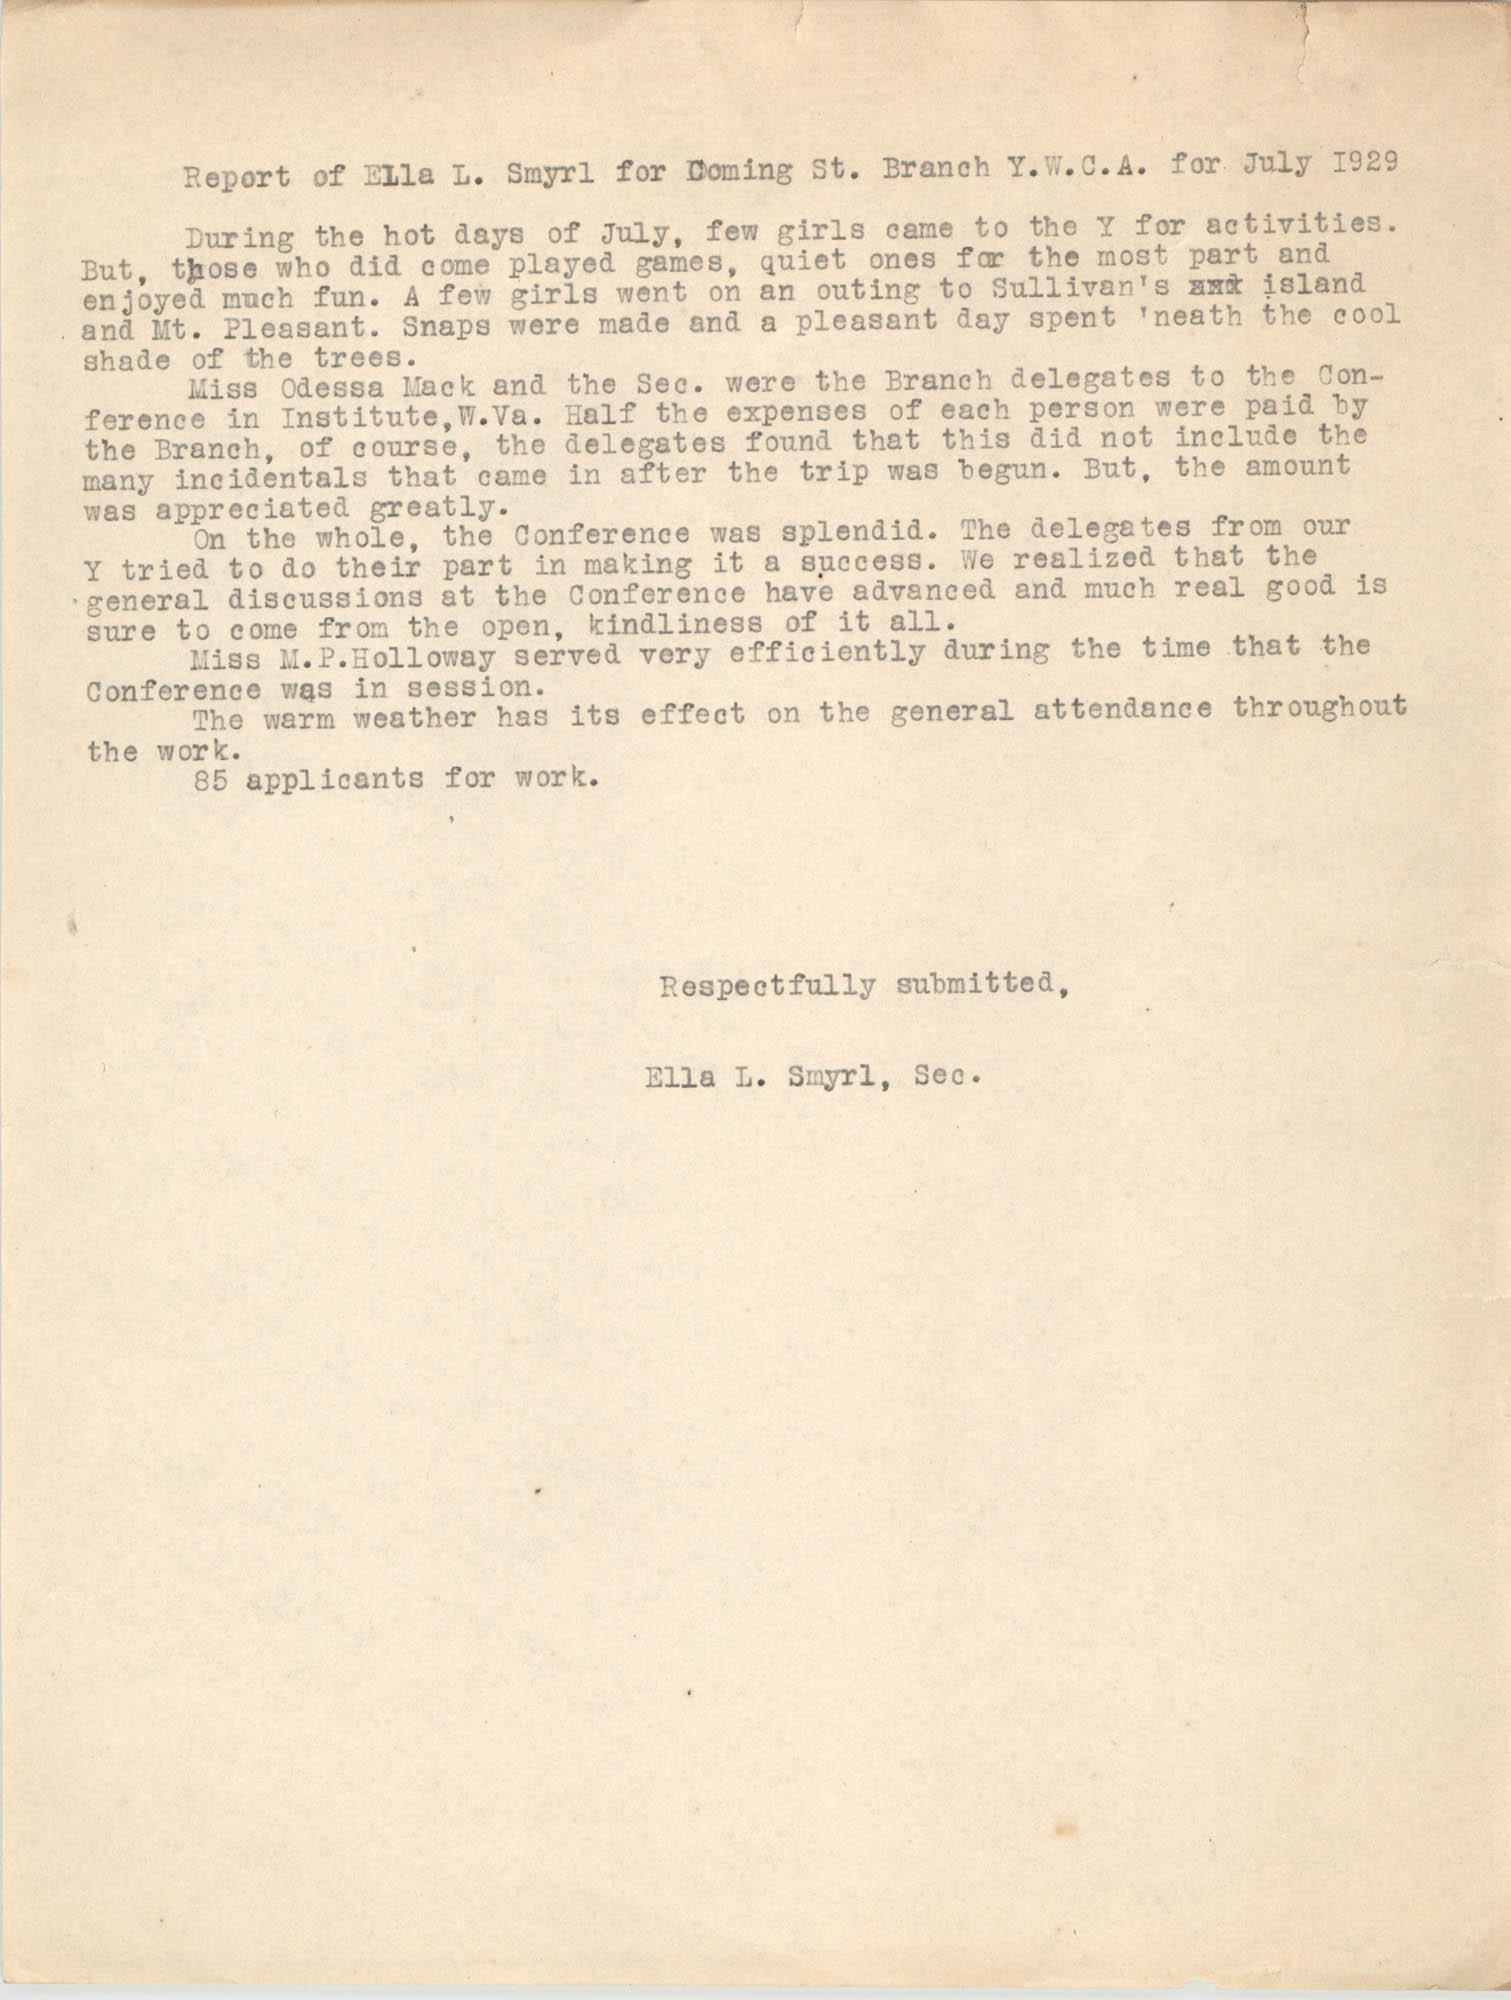 Monthly Report for the Coming Street Y.W.C.A., July 1929